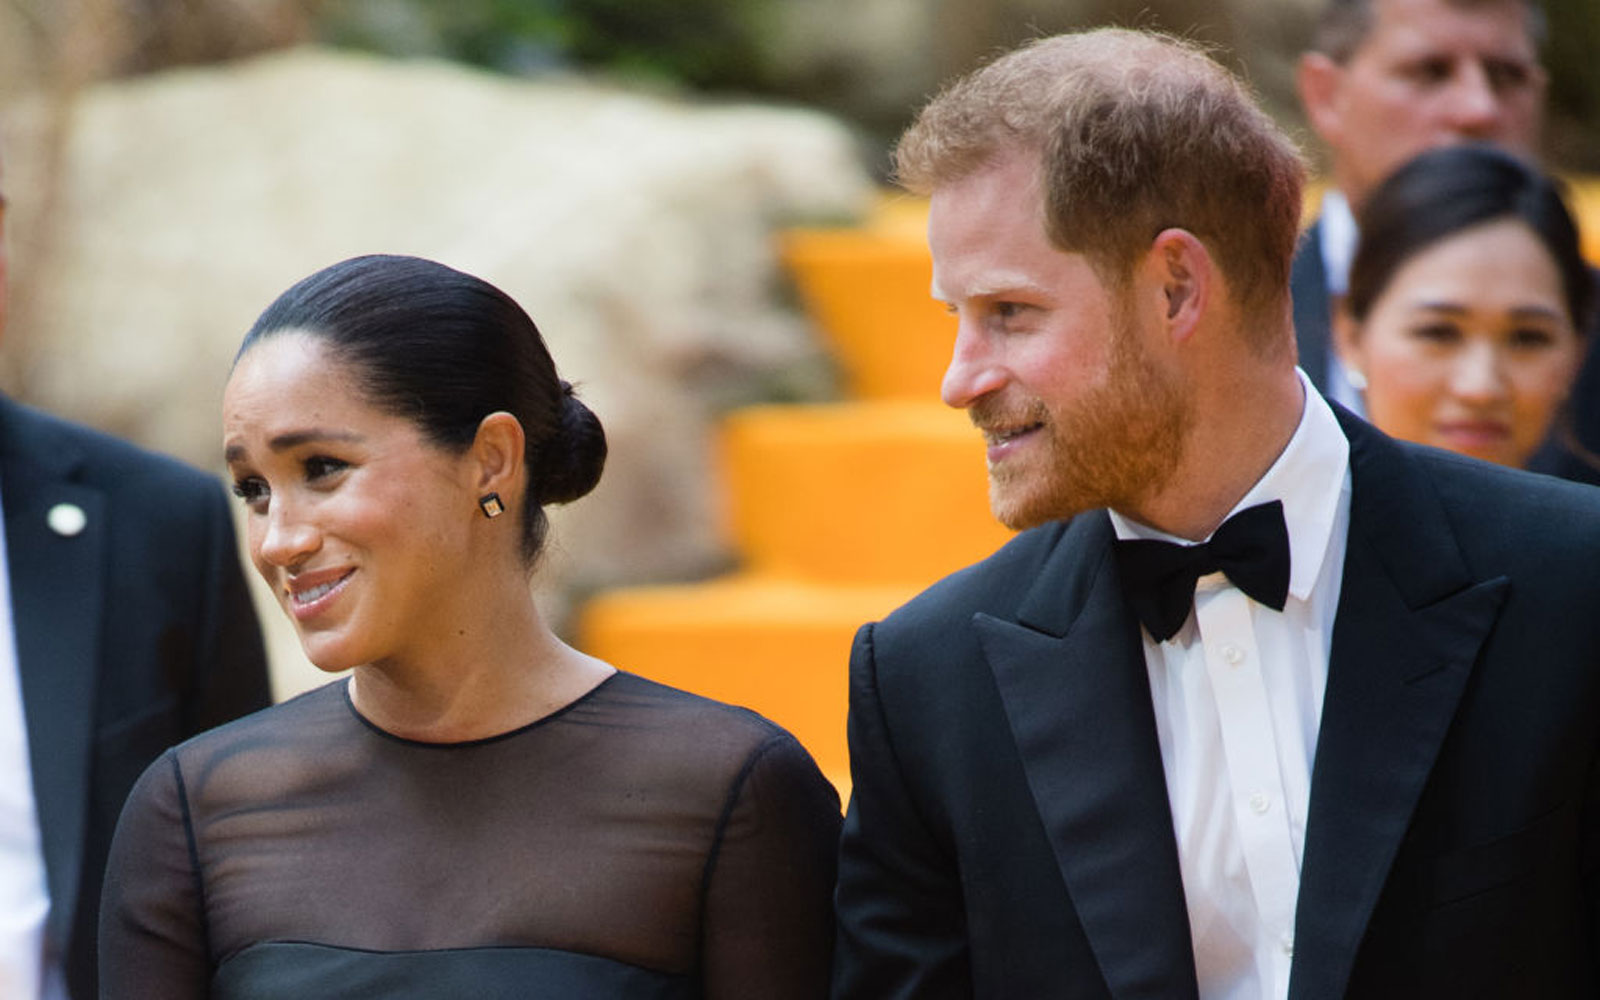 Meghan Markle and Prince Harry Have Hired a 26-year-old Social Media Guru to Help Them 'Target Millennials'